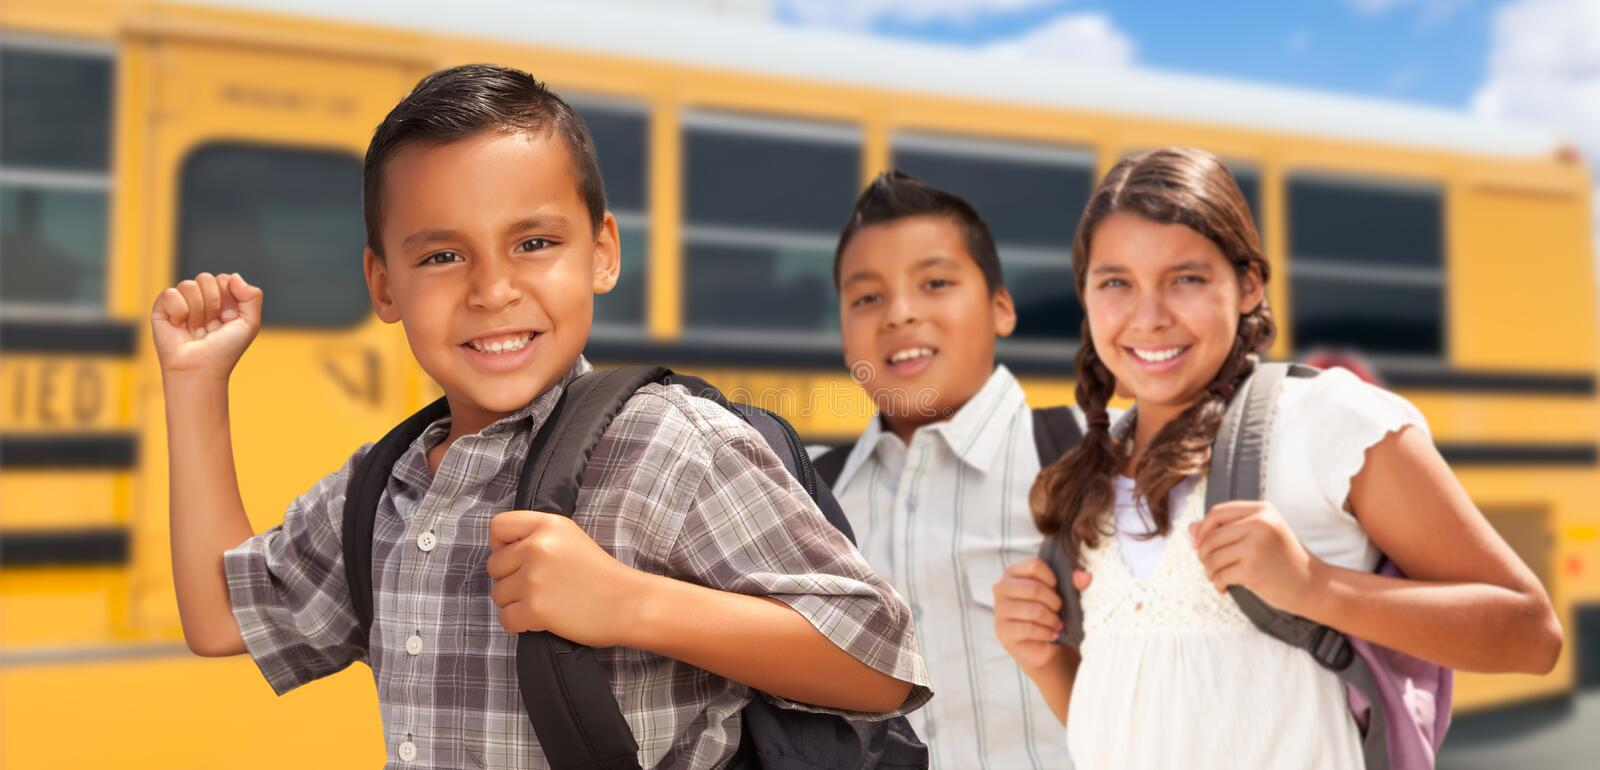 Excited Young Hispanic Boys and Girl Walking Near School Bus royalty free stock photography